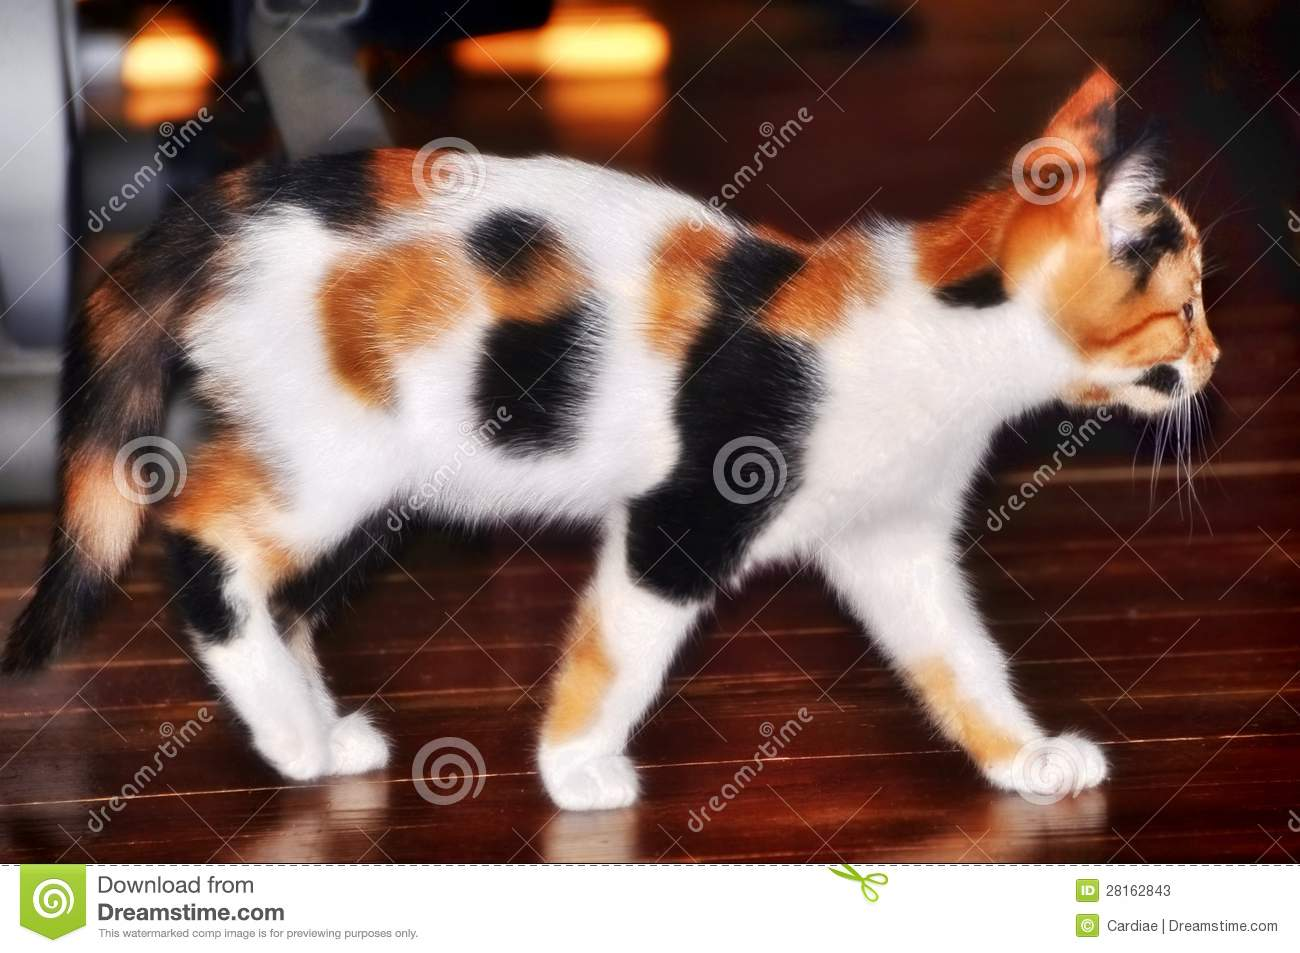 Ancient Greece Floor Plan Beautiful Pretty Calico Cat Kitten Stock Photos